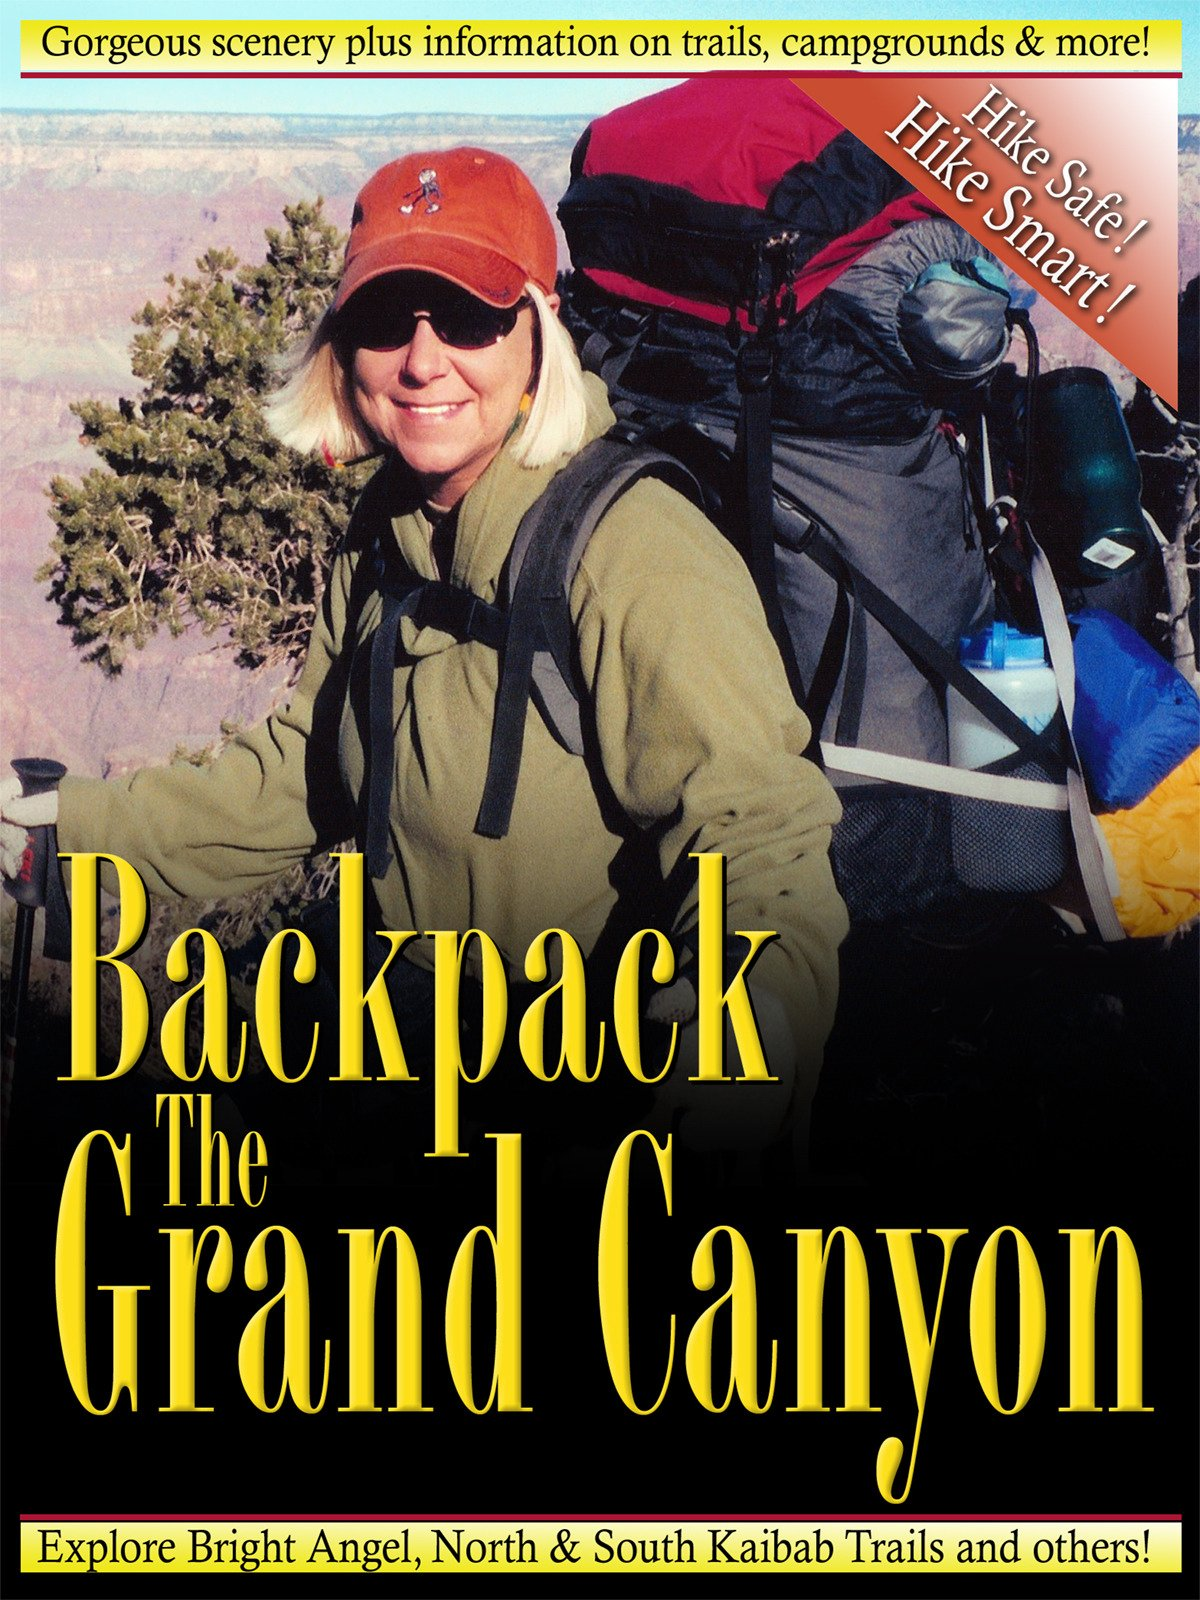 Backpack the Grand Canyon-2016 Version